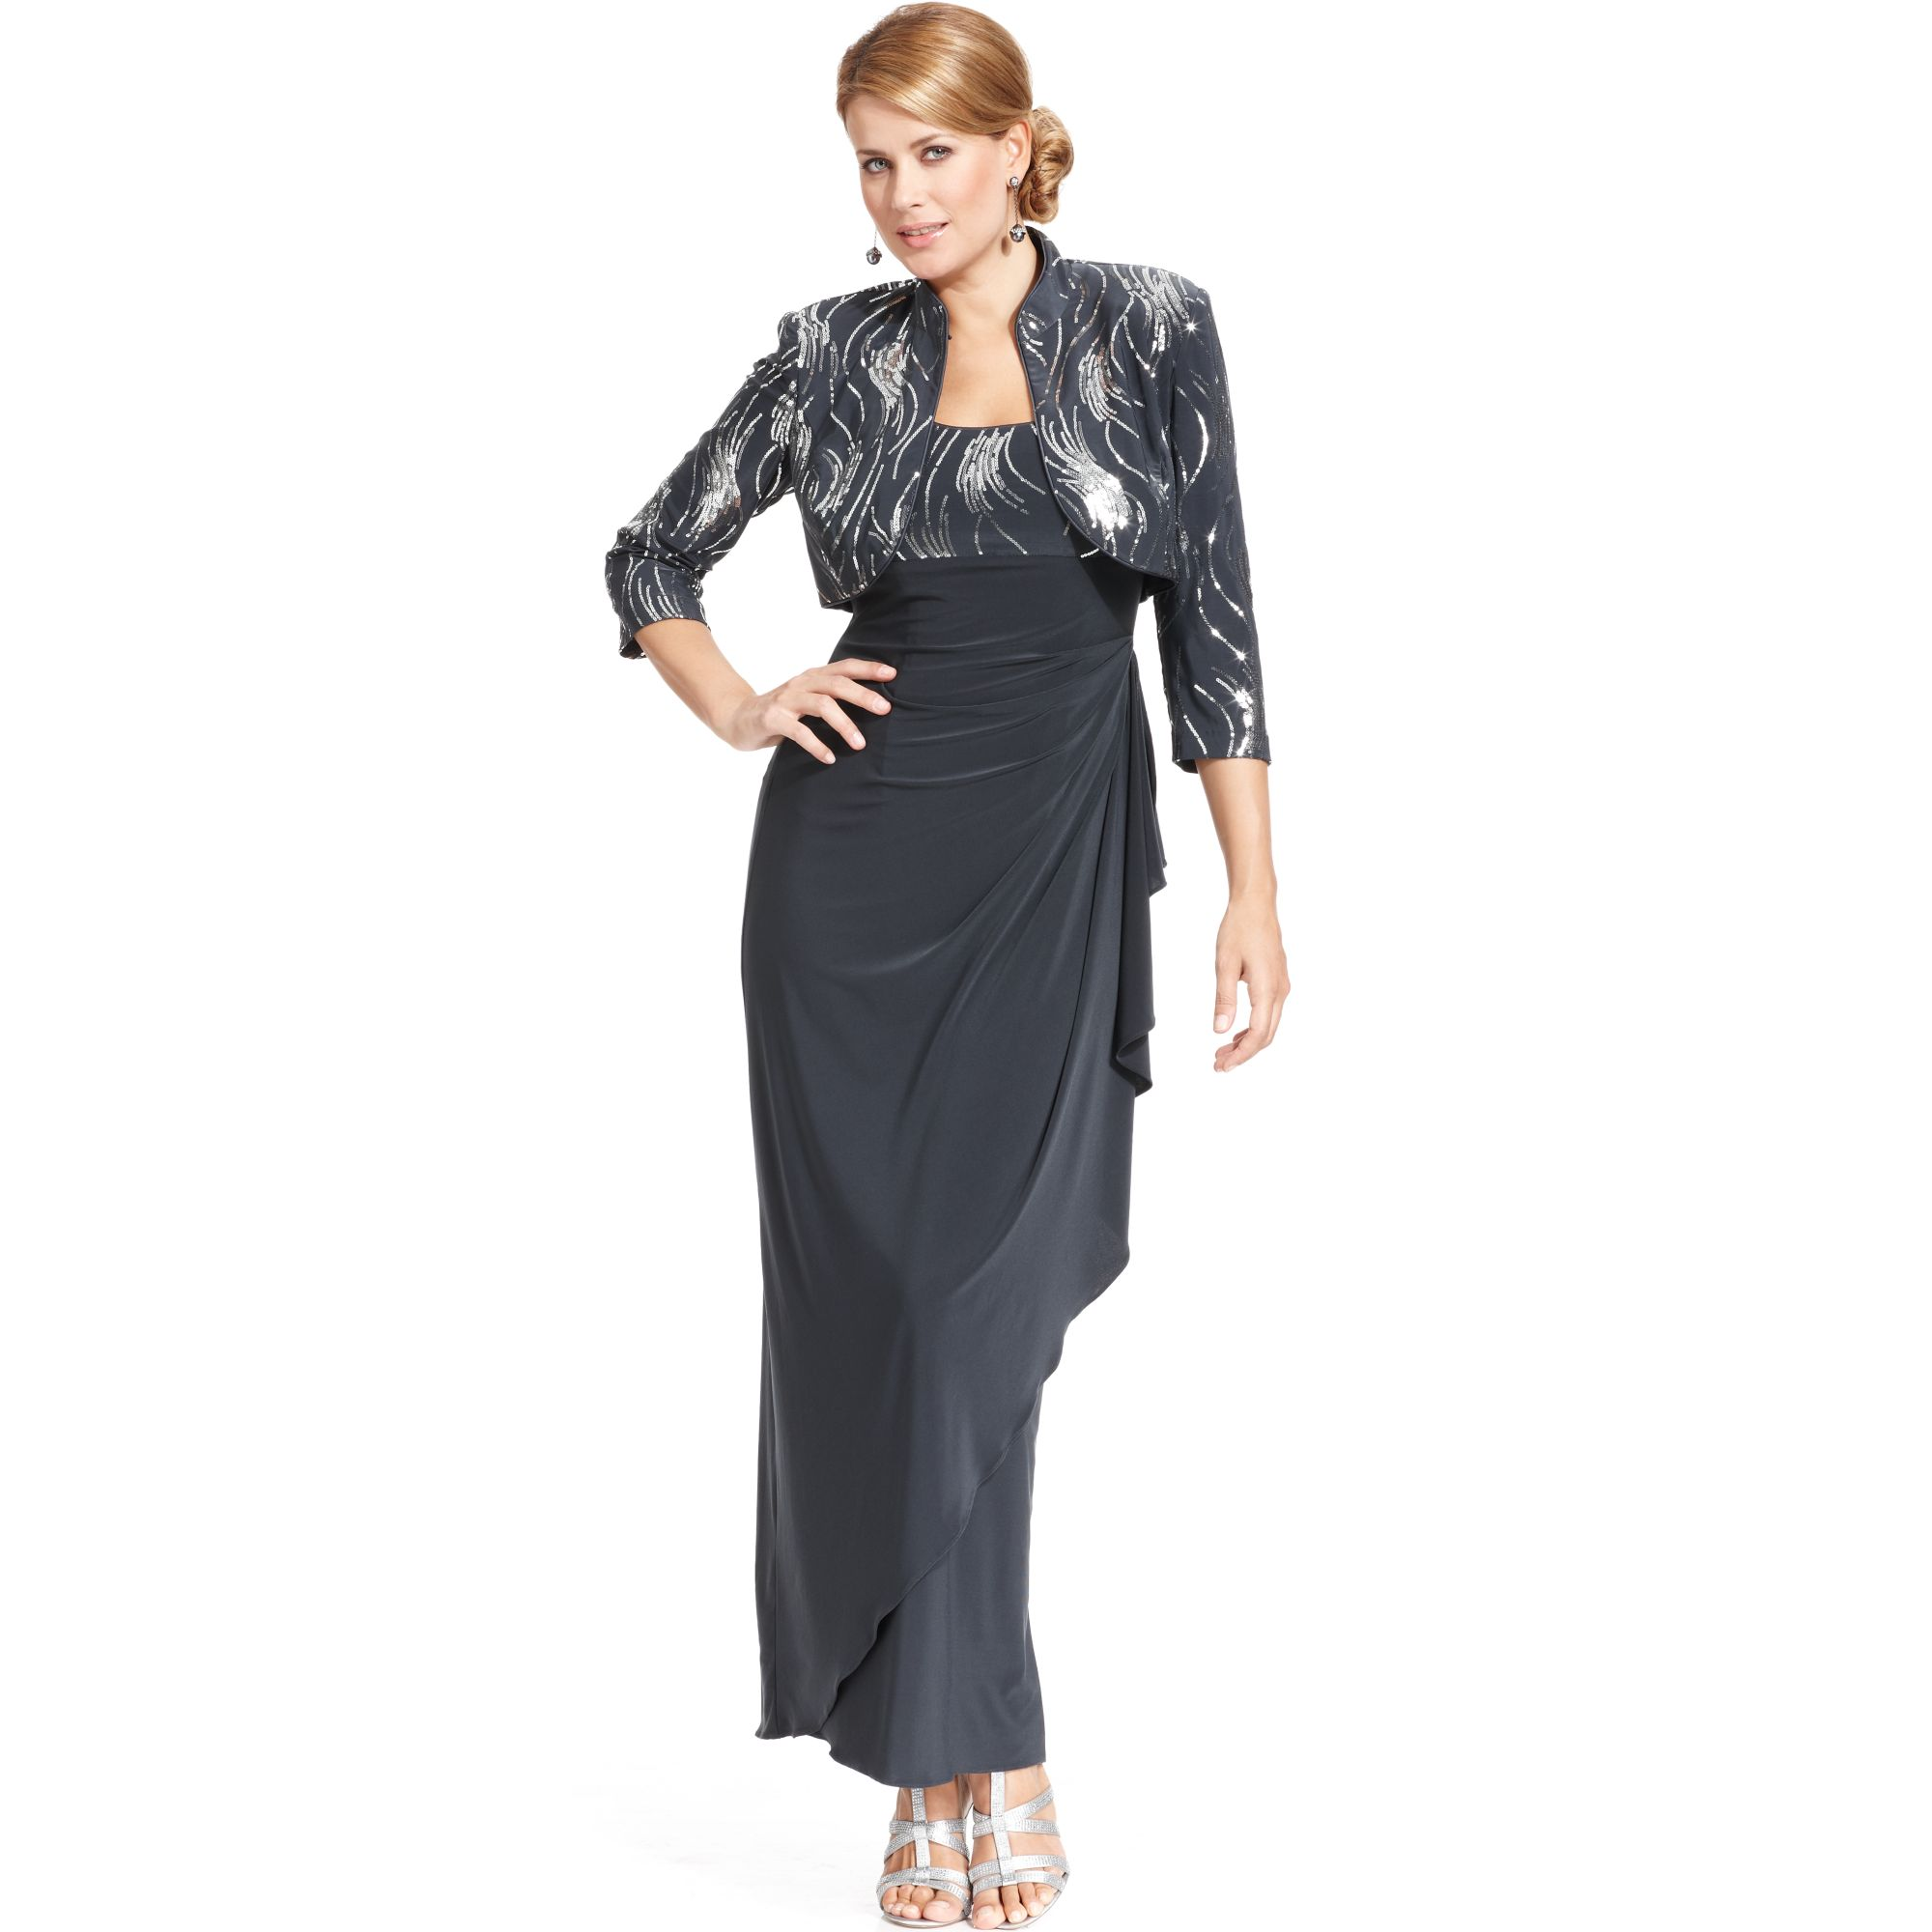 alex evenings charcoal sleeveless sequined ruffled evening gown product 1 14225929 656405004